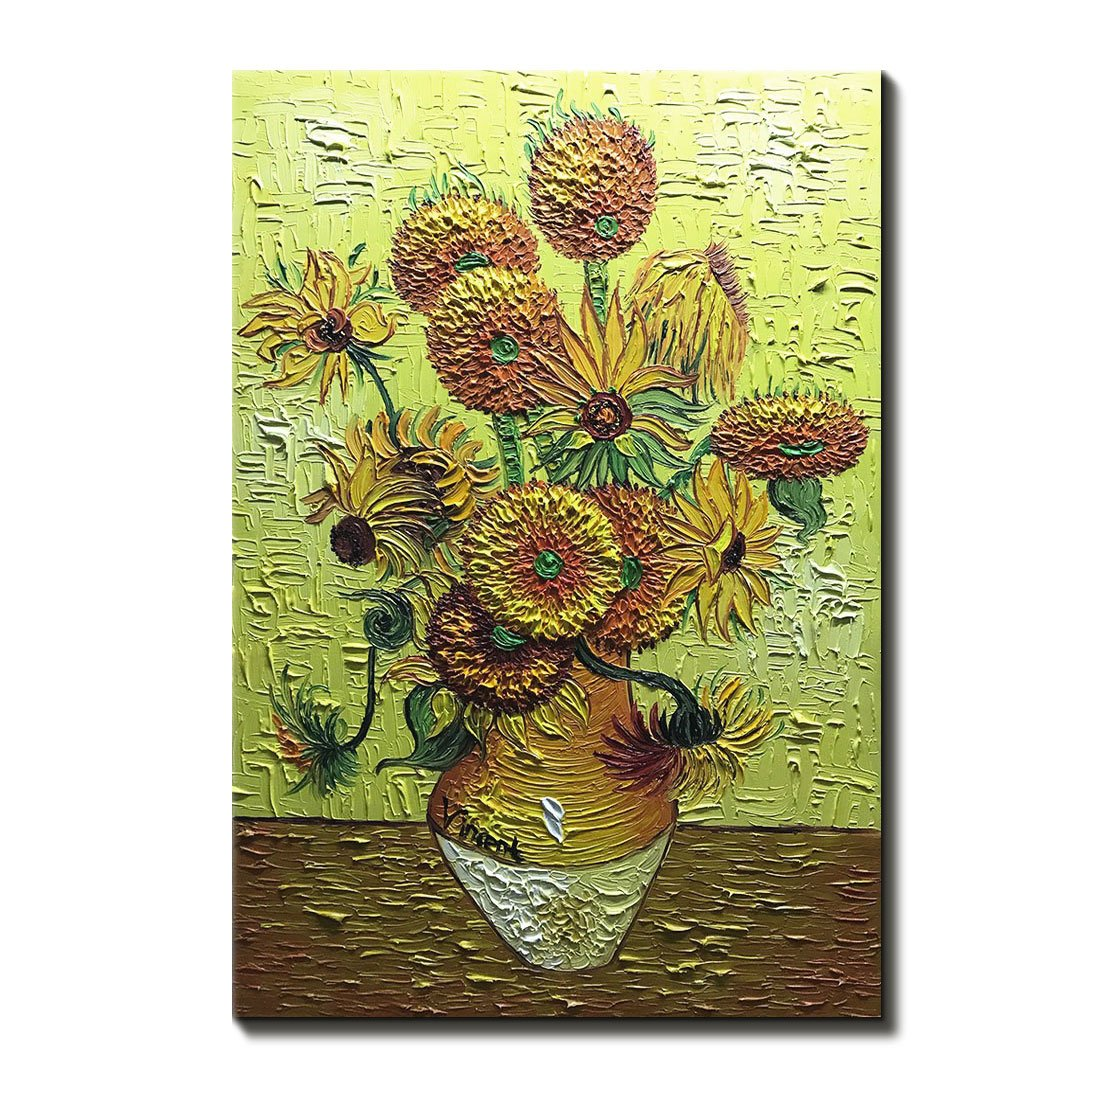 Amei Art Paintings, 36X48 Inch The Sunflowers by Vincent Van Gogh - Oil Painting Modern Home Decor Wall Art Painting Wood Inside Framed Hanging Wall Decoration Abstract by Amei